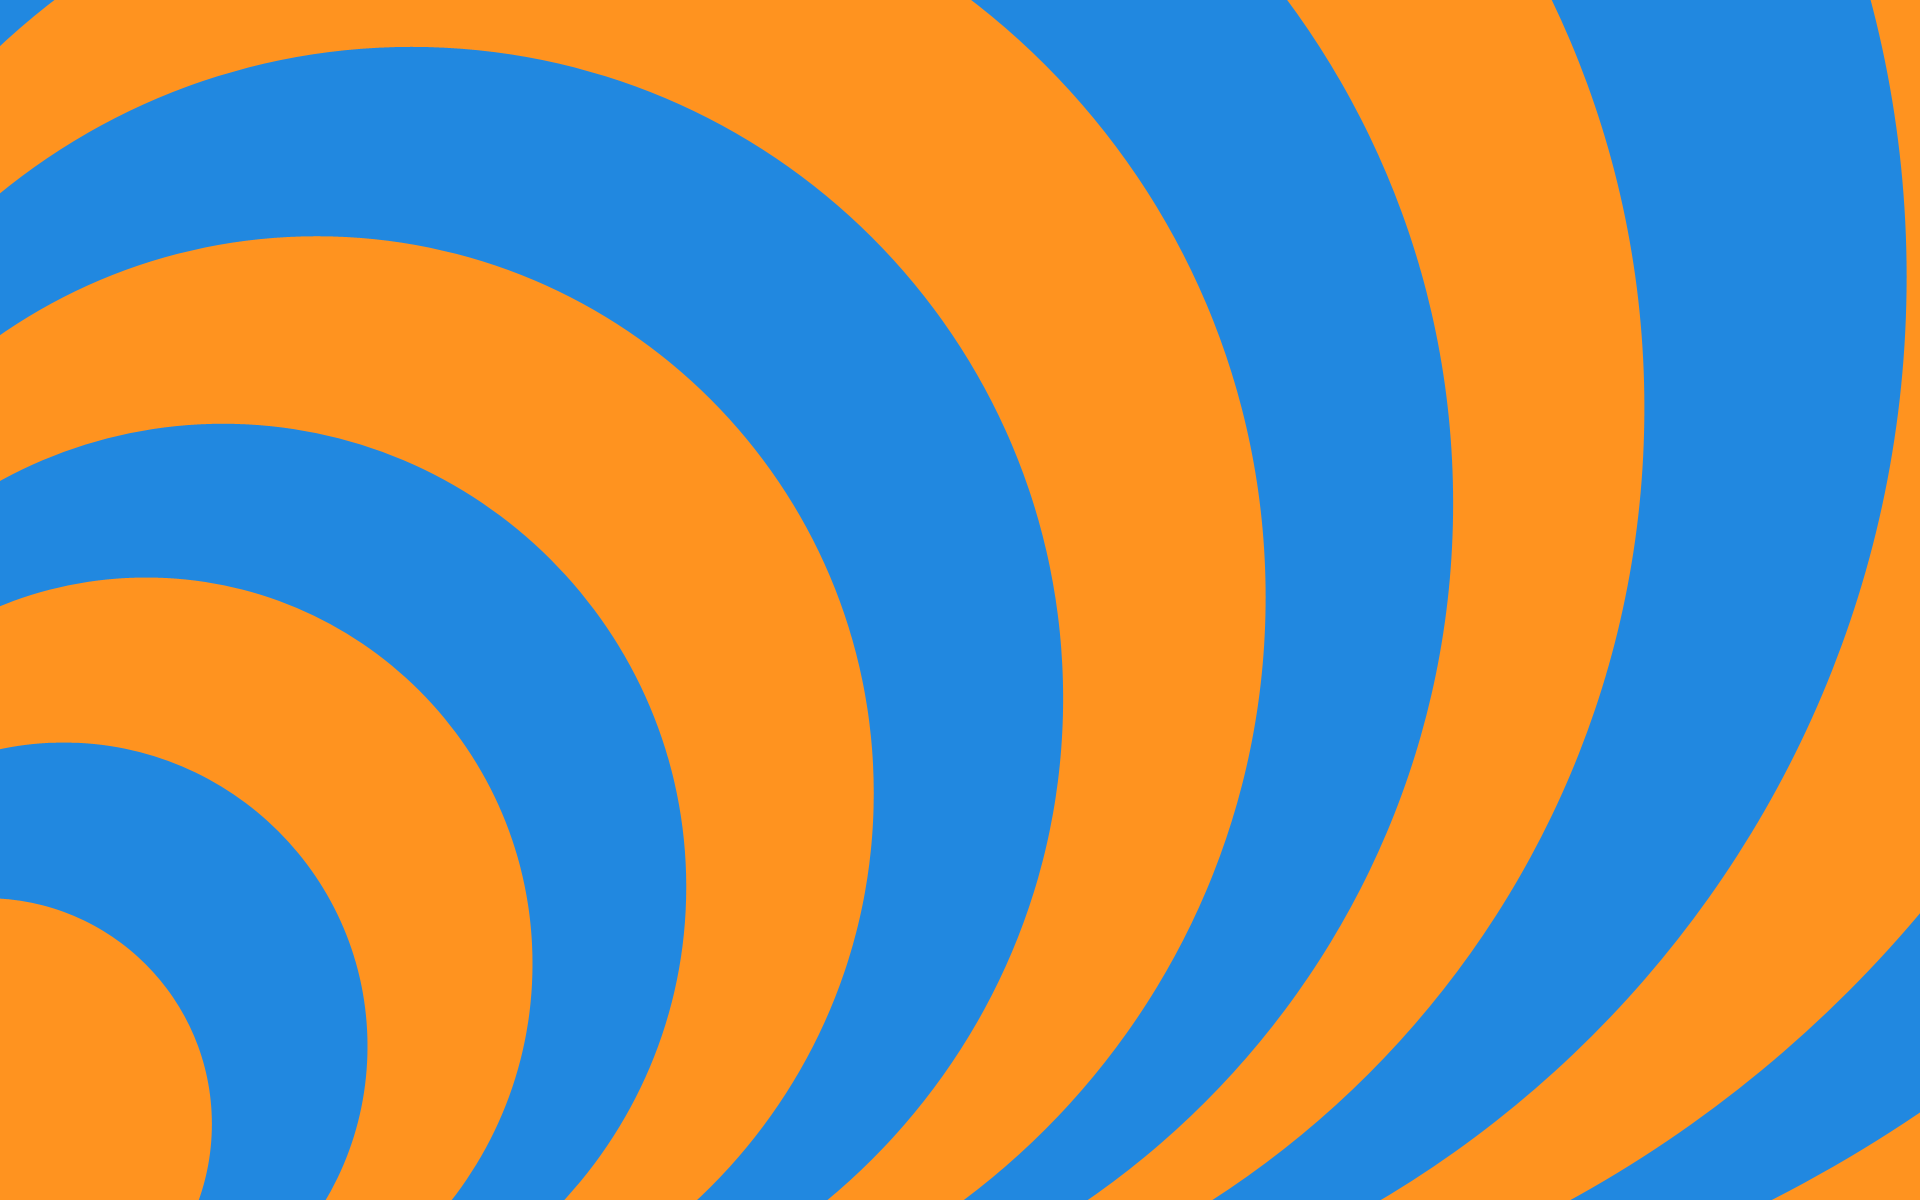 Concentric   Orange and Blue by ts2master 1920x1200